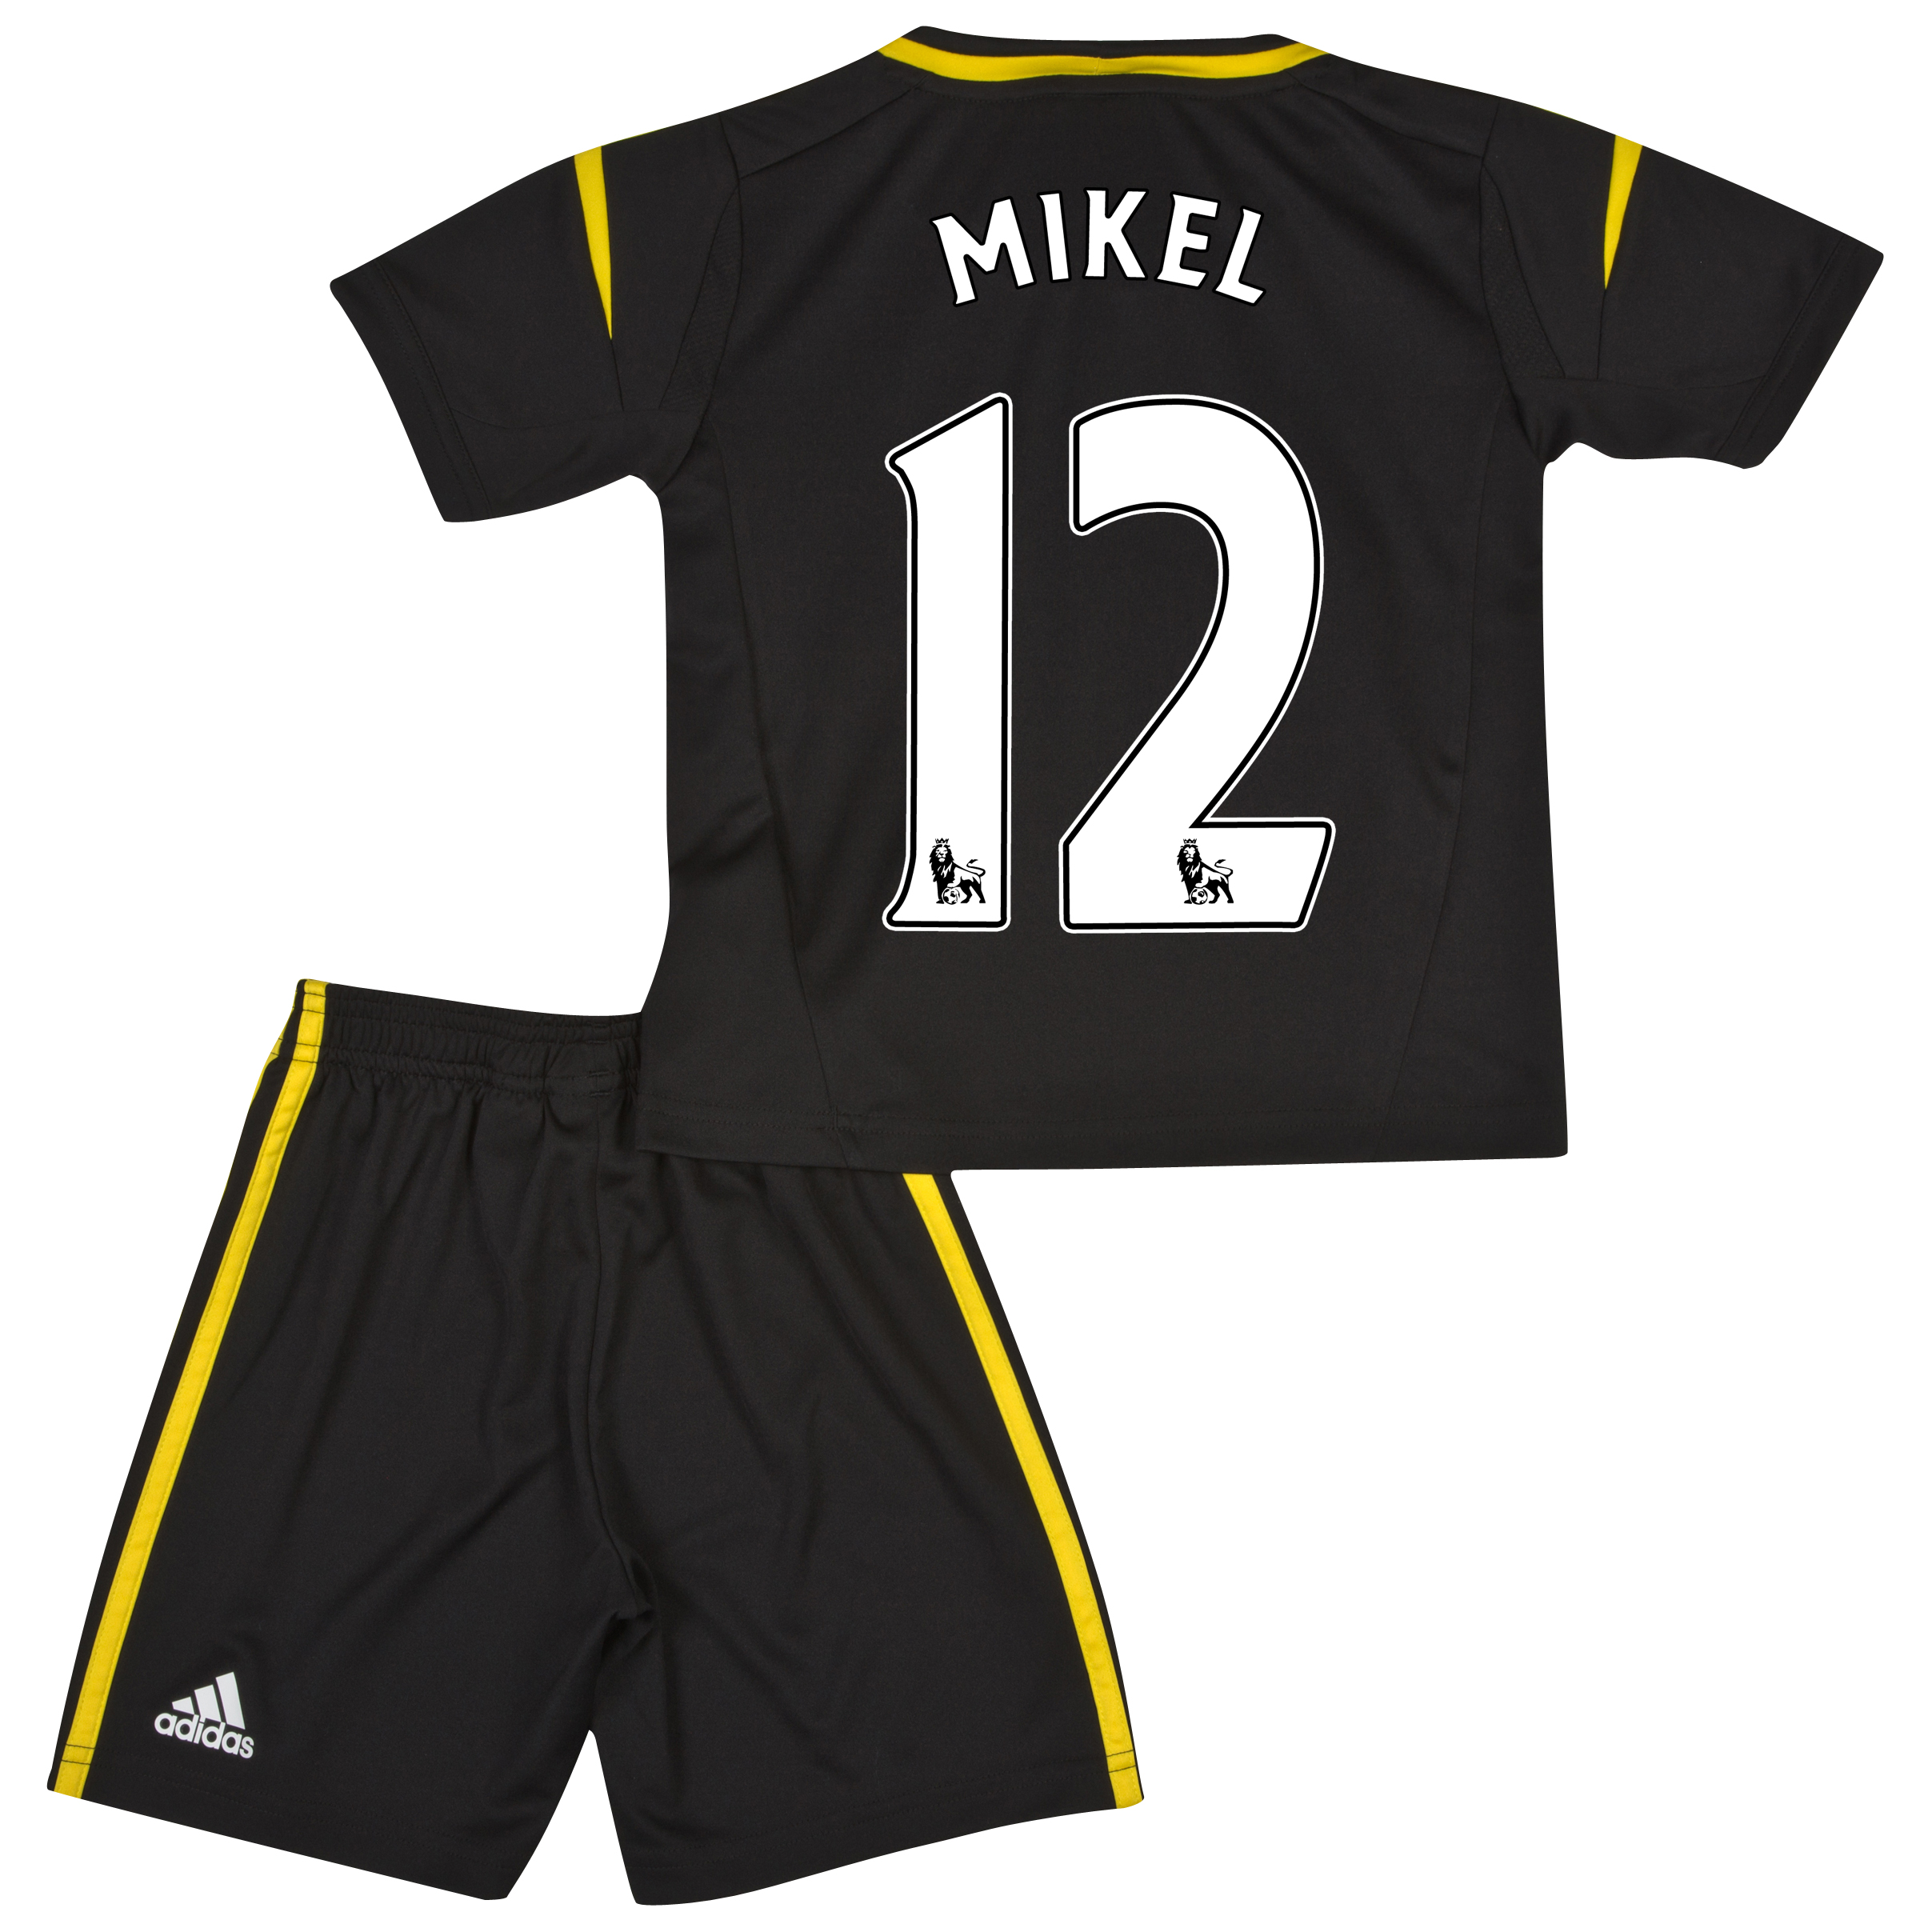 Chelsea Third Mini Kit 2012/13 with Mikel 12 printing